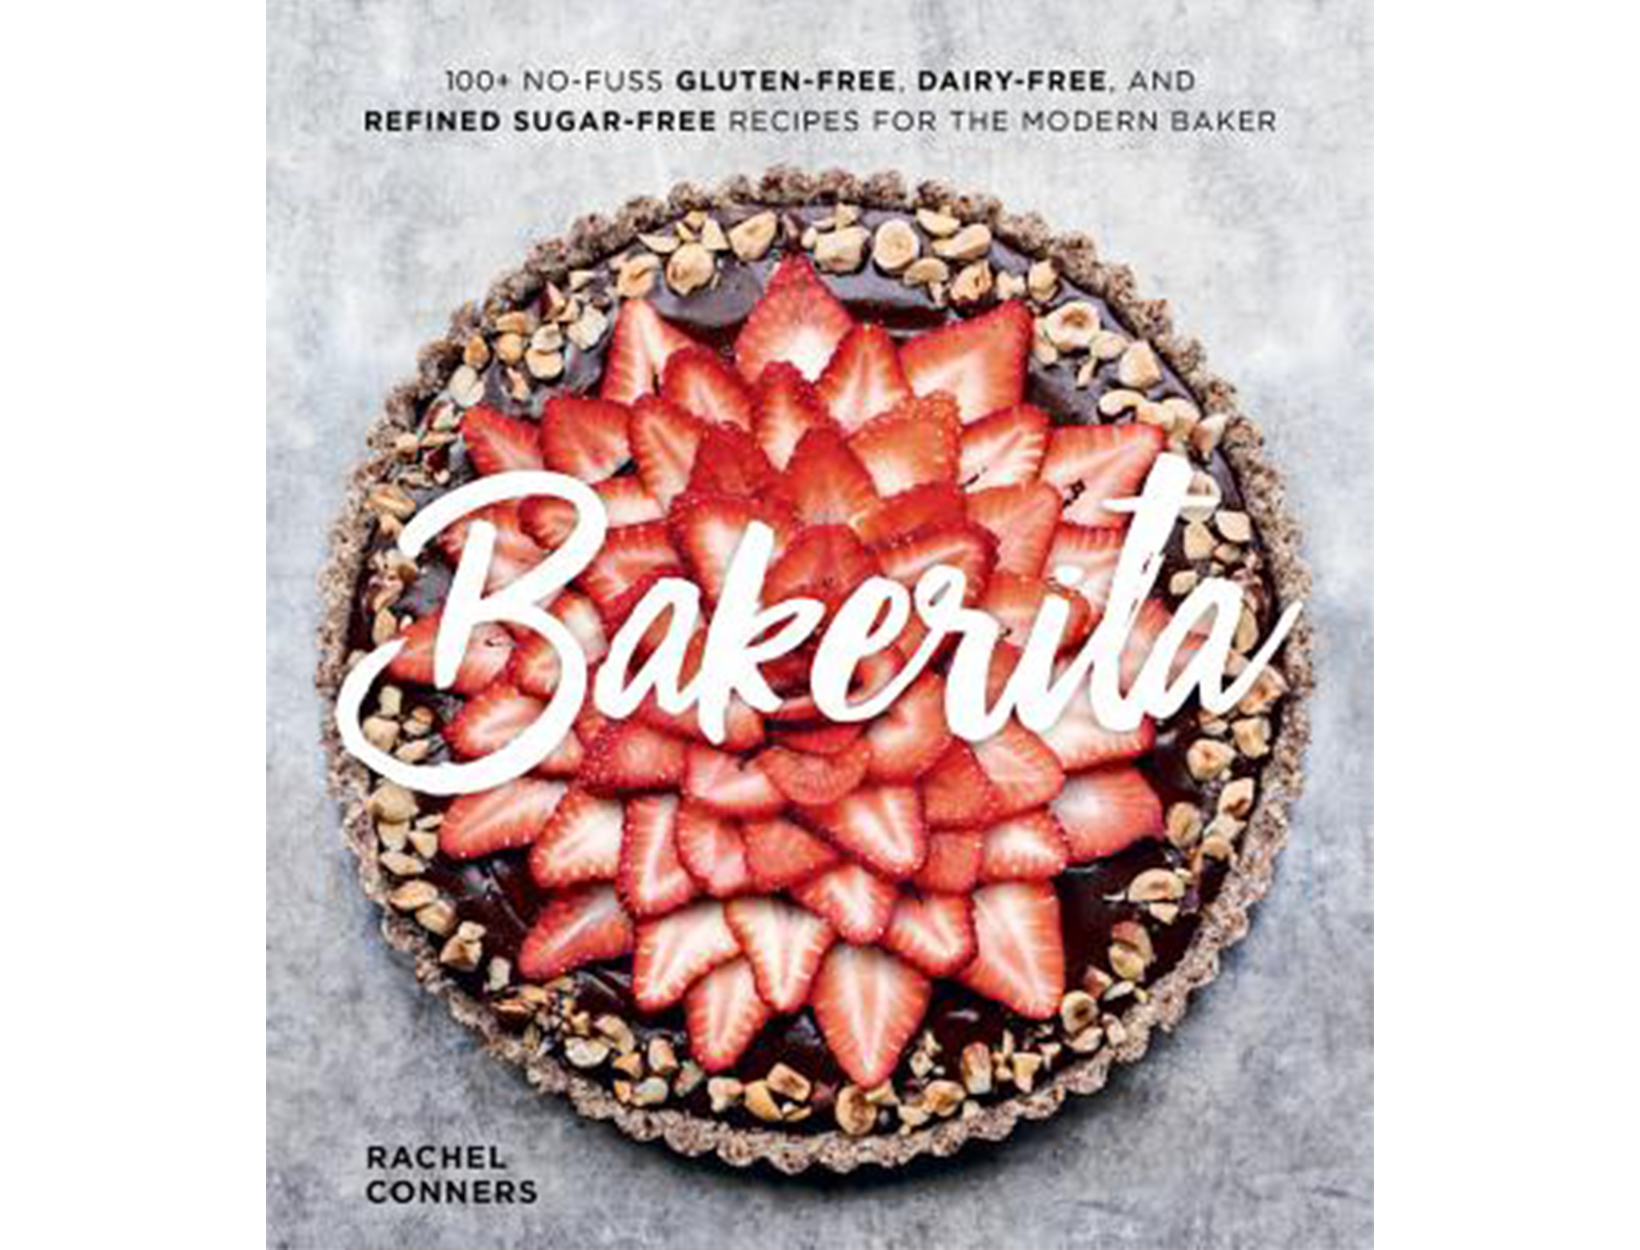 <em>Bakerita</em> by Rachel Conners